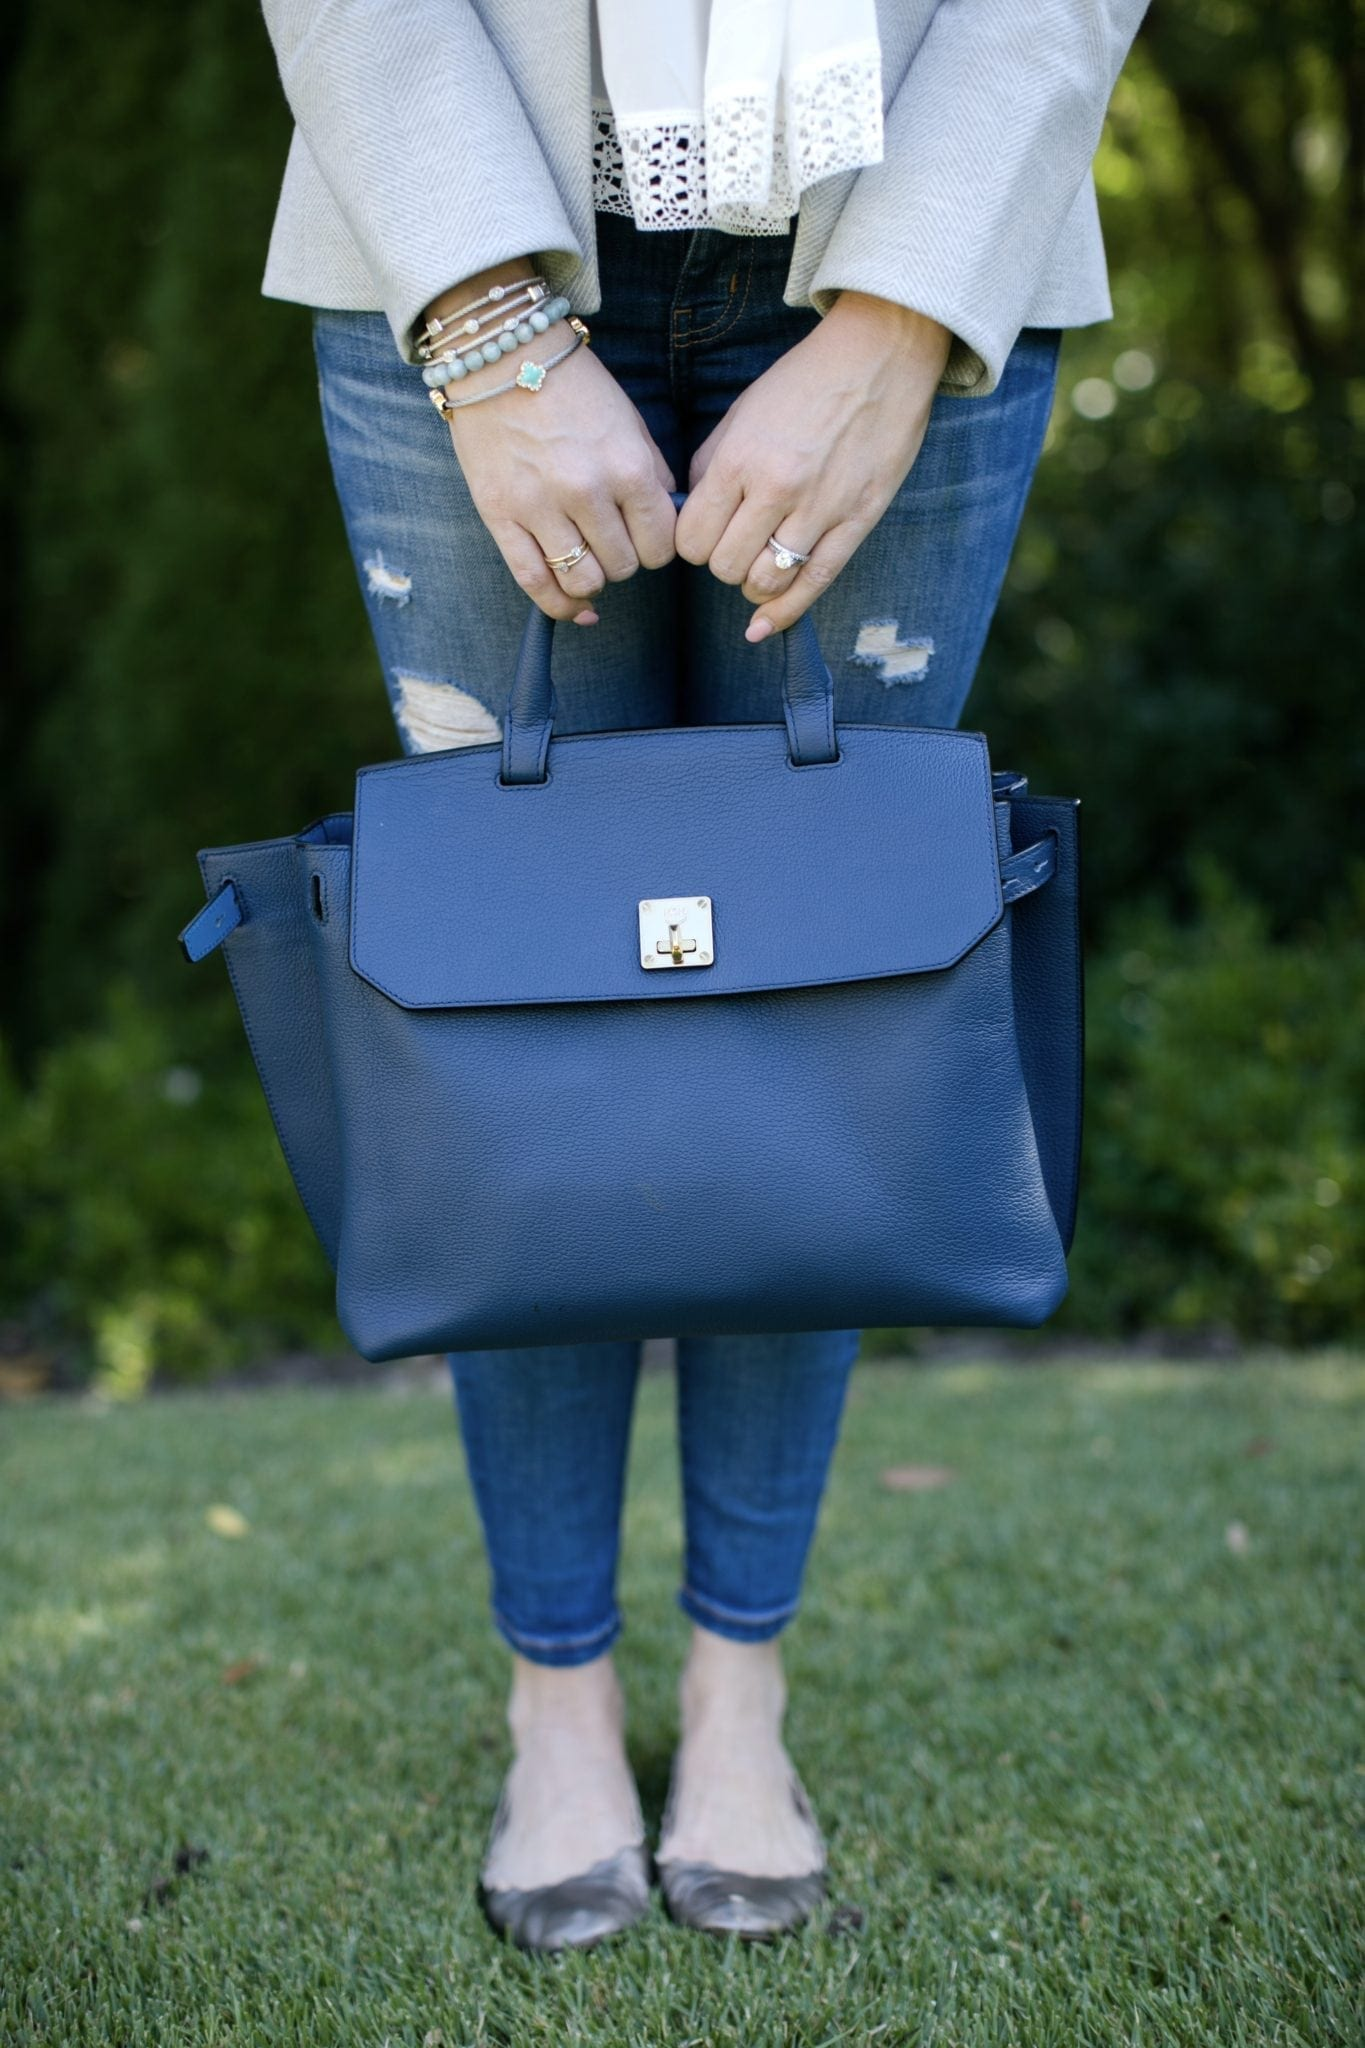 mcm blue backpack with veronica beard jacket with girl standing by green trees in chloe shoes